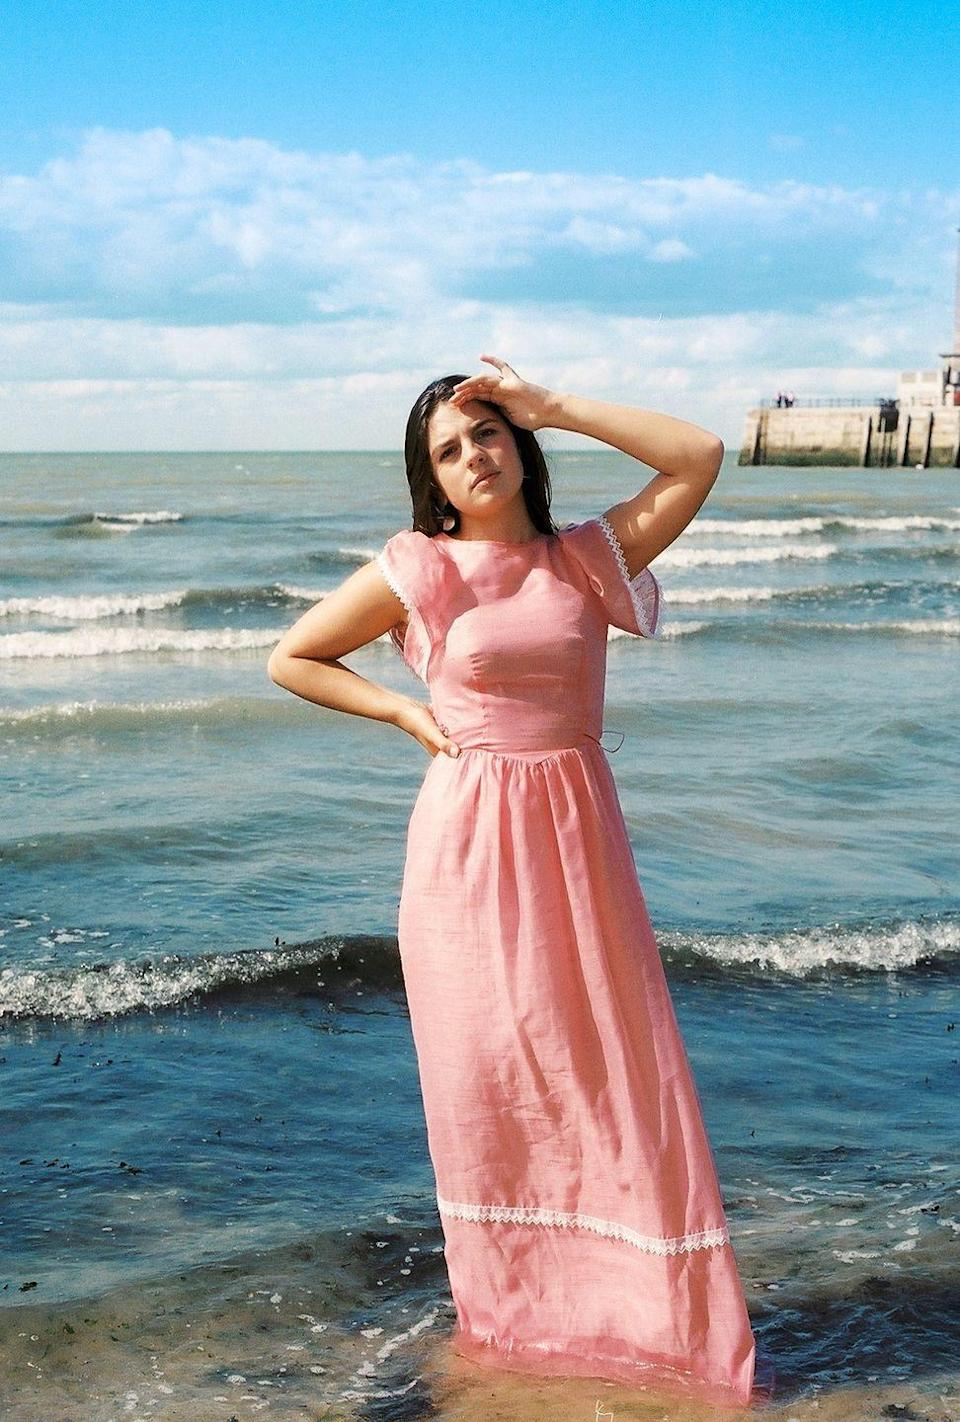 """<p>One of Margate's most treasured vintage shops also sells online, meaning you can grab a slice of Kent-based <a href=""""https://www.peonyvintage.com/shop?page=3"""" rel=""""nofollow noopener"""" target=""""_blank"""" data-ylk=""""slk:Peony Vintage"""" class=""""link rapid-noclick-resp"""">Peony Vintage</a> wherever you are.</p><p>Georgie Roberton has created a compact collection of low price pieces that often celebrate colour and print.</p><p>'I believe in styling true vintage to curate a collection of wearable, affordable and accessible high fashion-style pieces for the modern woman who cares about sustainability,' Roberton told us about her shop.</p><p><a class=""""link rapid-noclick-resp"""" href=""""https://www.peonyvintage.com/"""" rel=""""nofollow noopener"""" target=""""_blank"""" data-ylk=""""slk:SHOP PEONY VINTAGE NOW"""">SHOP PEONY VINTAGE NOW</a></p>"""